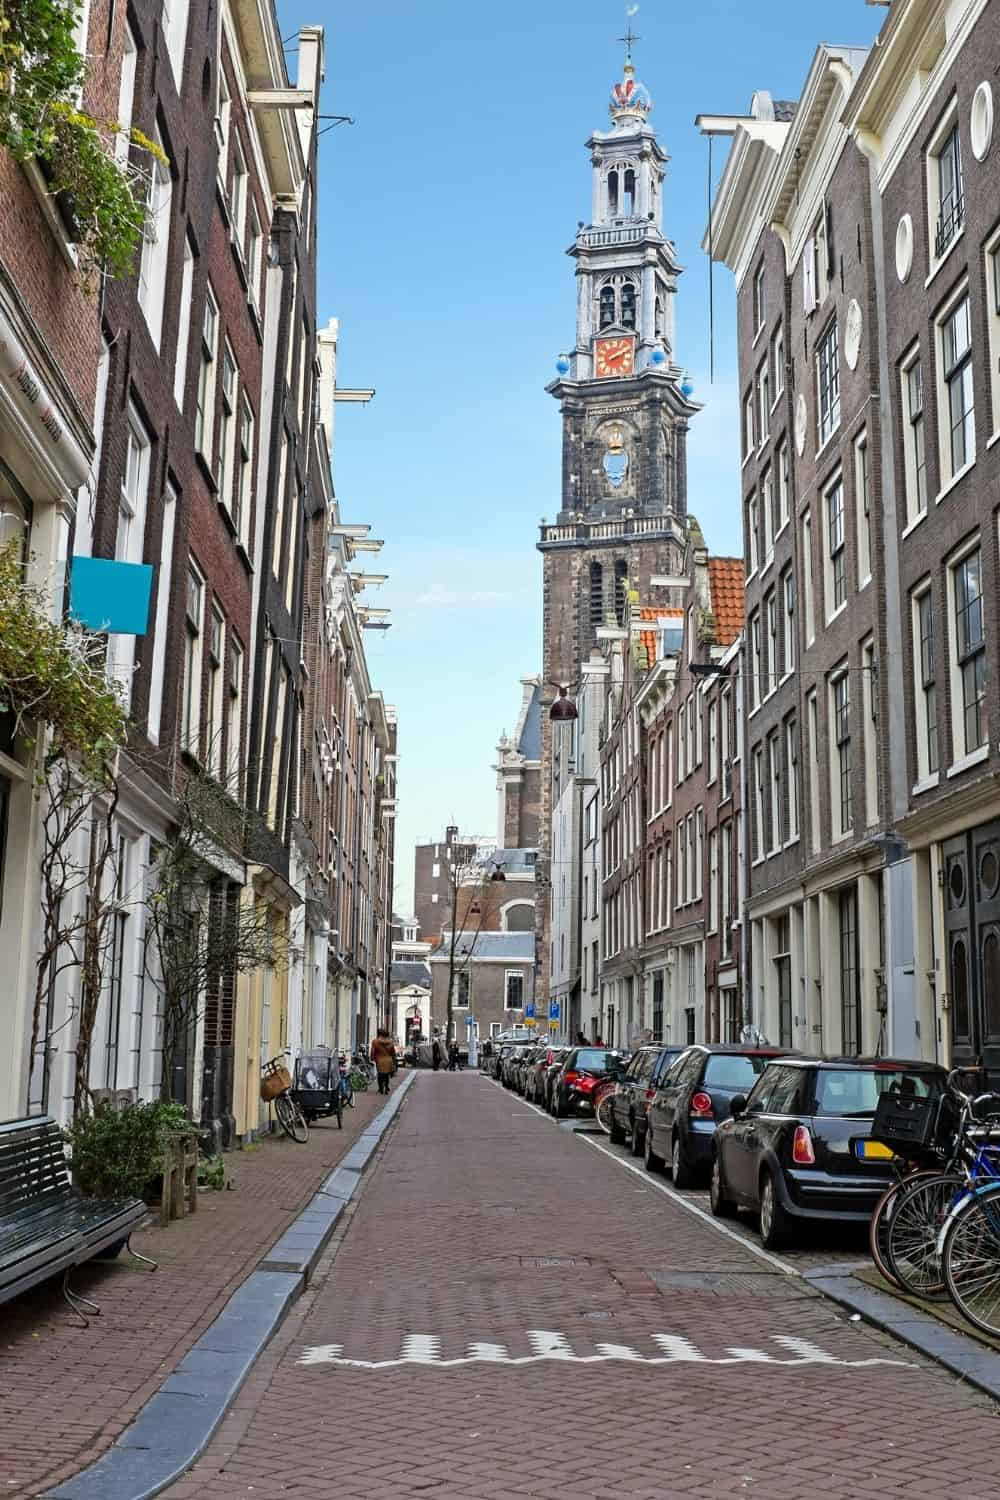 Explore some of the charming streets in Amsterdam's famous Jordaan neighborhood.